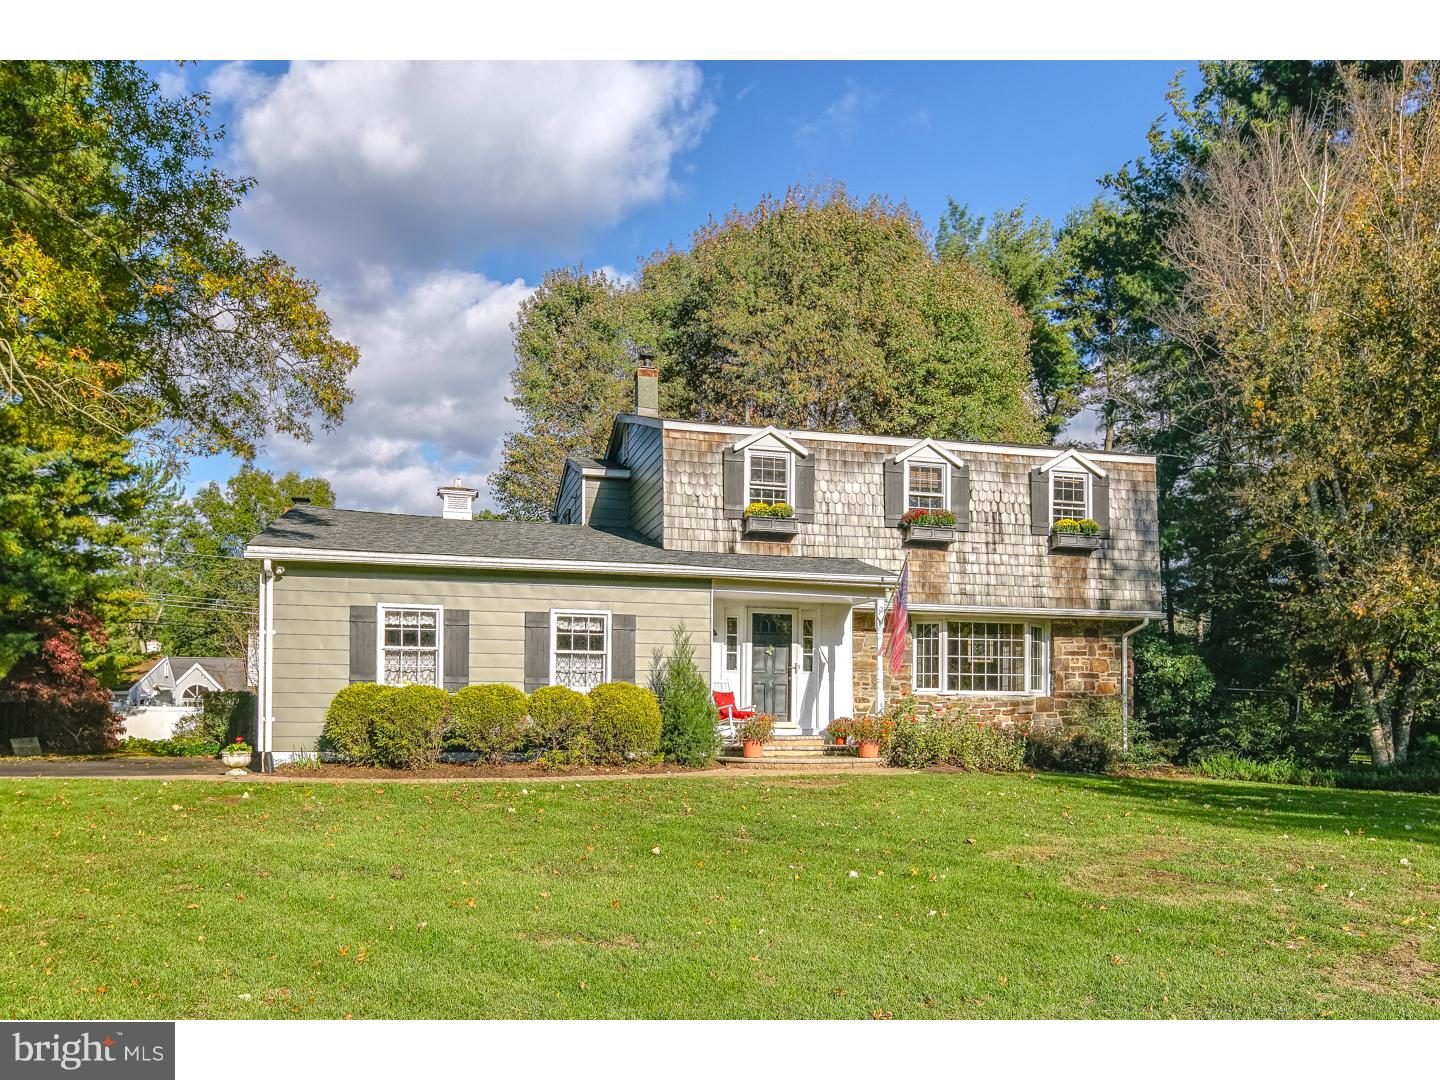 Property for Sale at 12 MILYKO Drive Upper Makefield Township, Pennsylvania 18977 United States